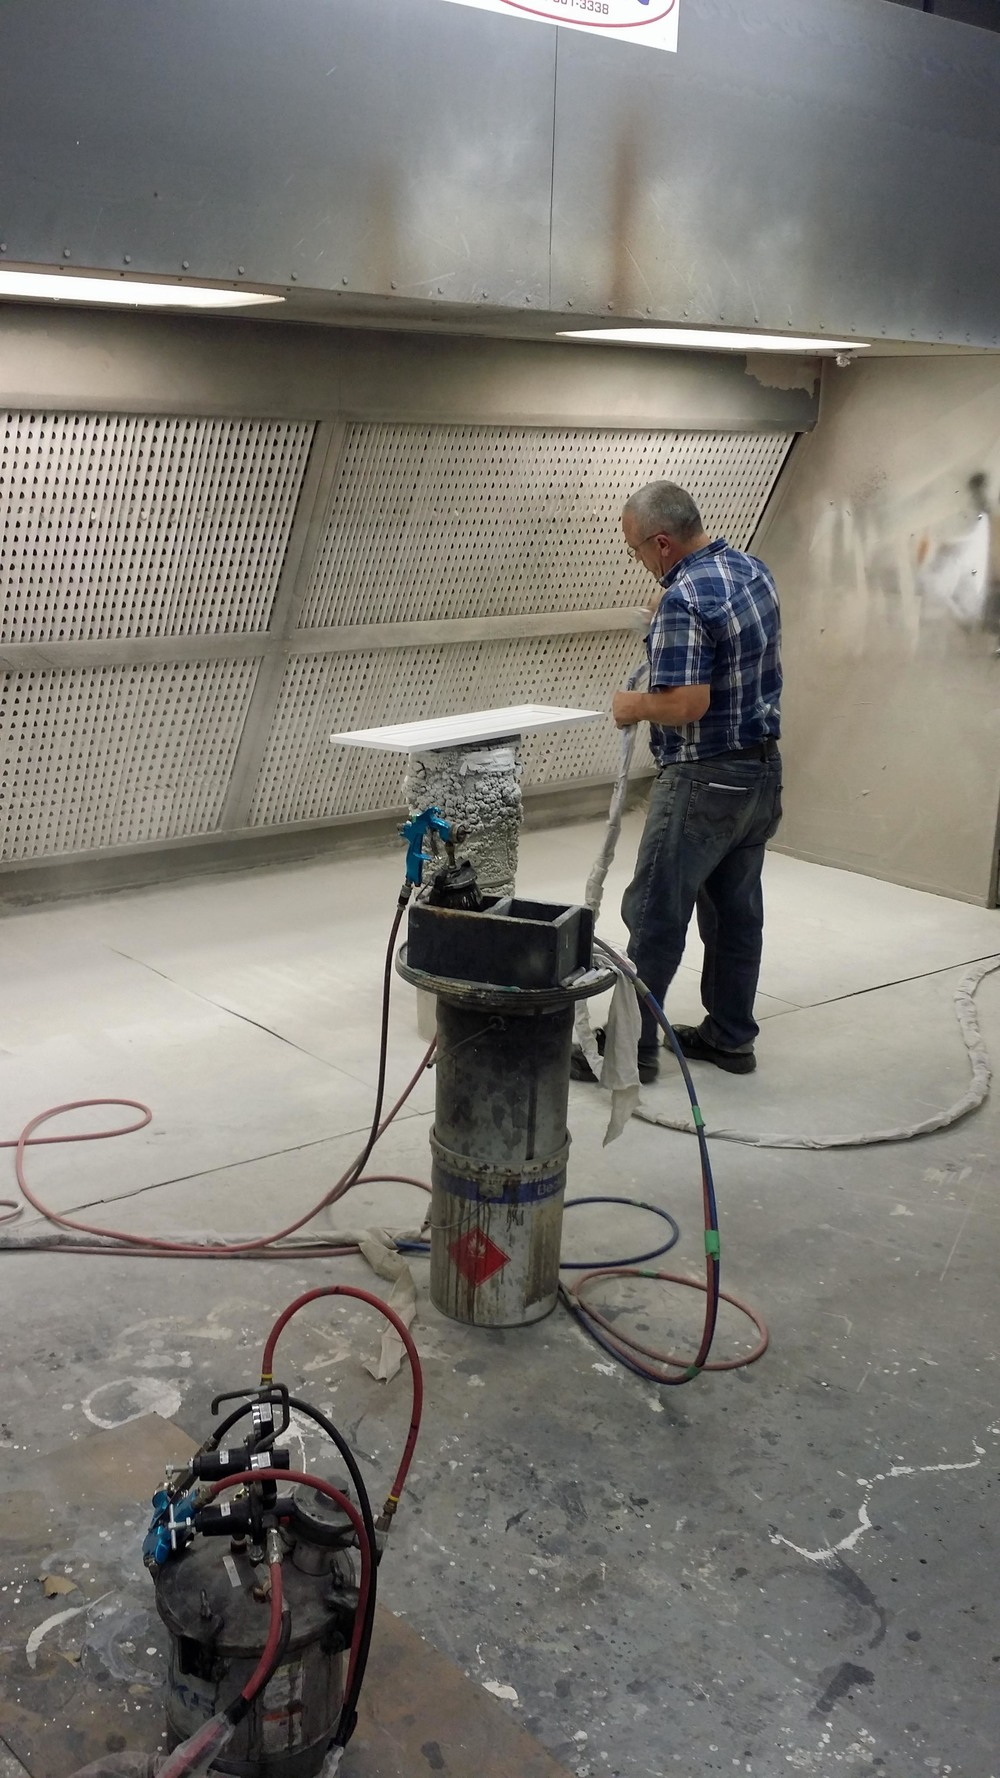 The spray booth